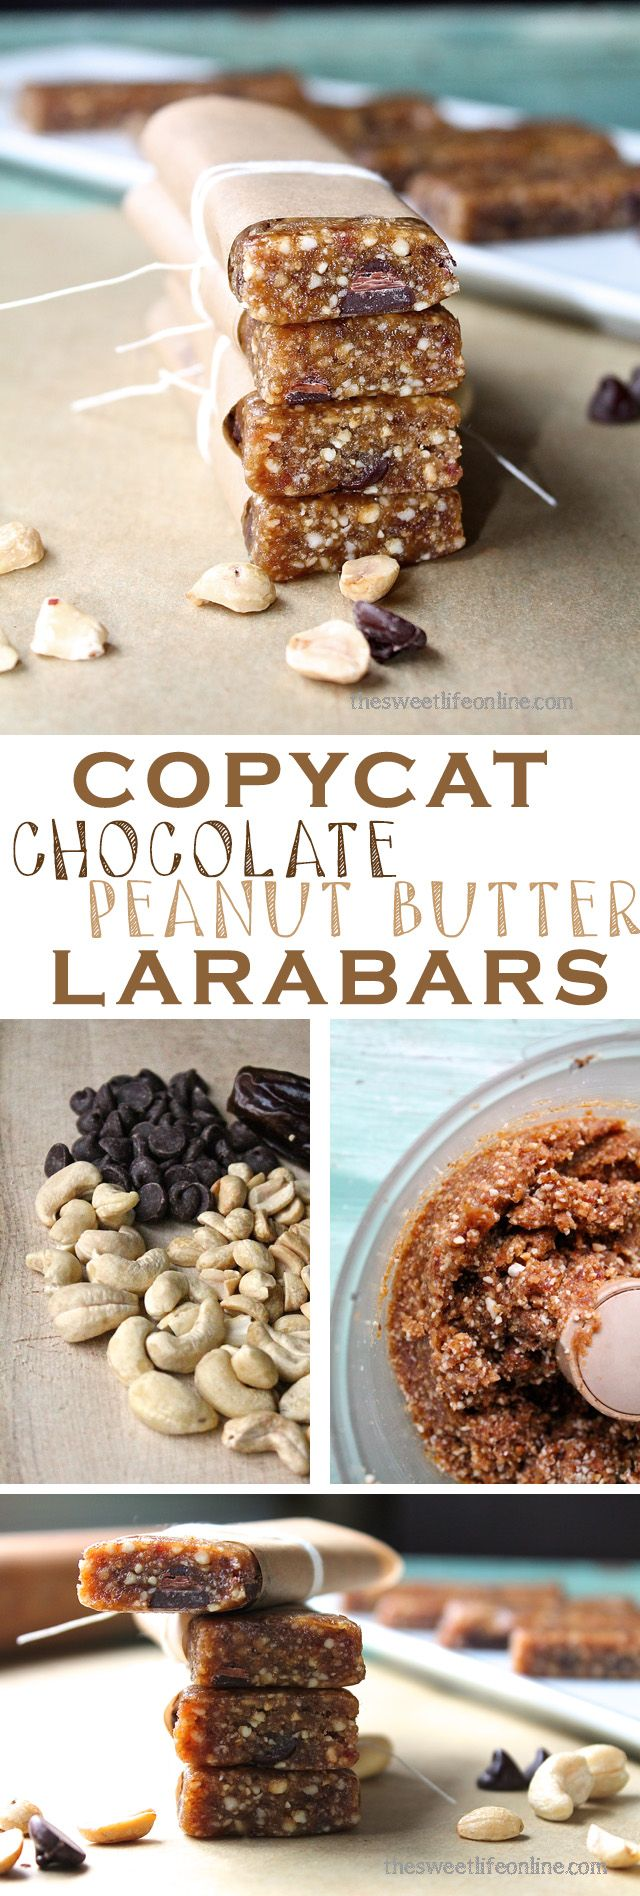 """These homemade Chocolate Chip Peanut Butter """"Larabars"""" are super simple to make and incredibly delicious. Click the photo for the full recipe!"""